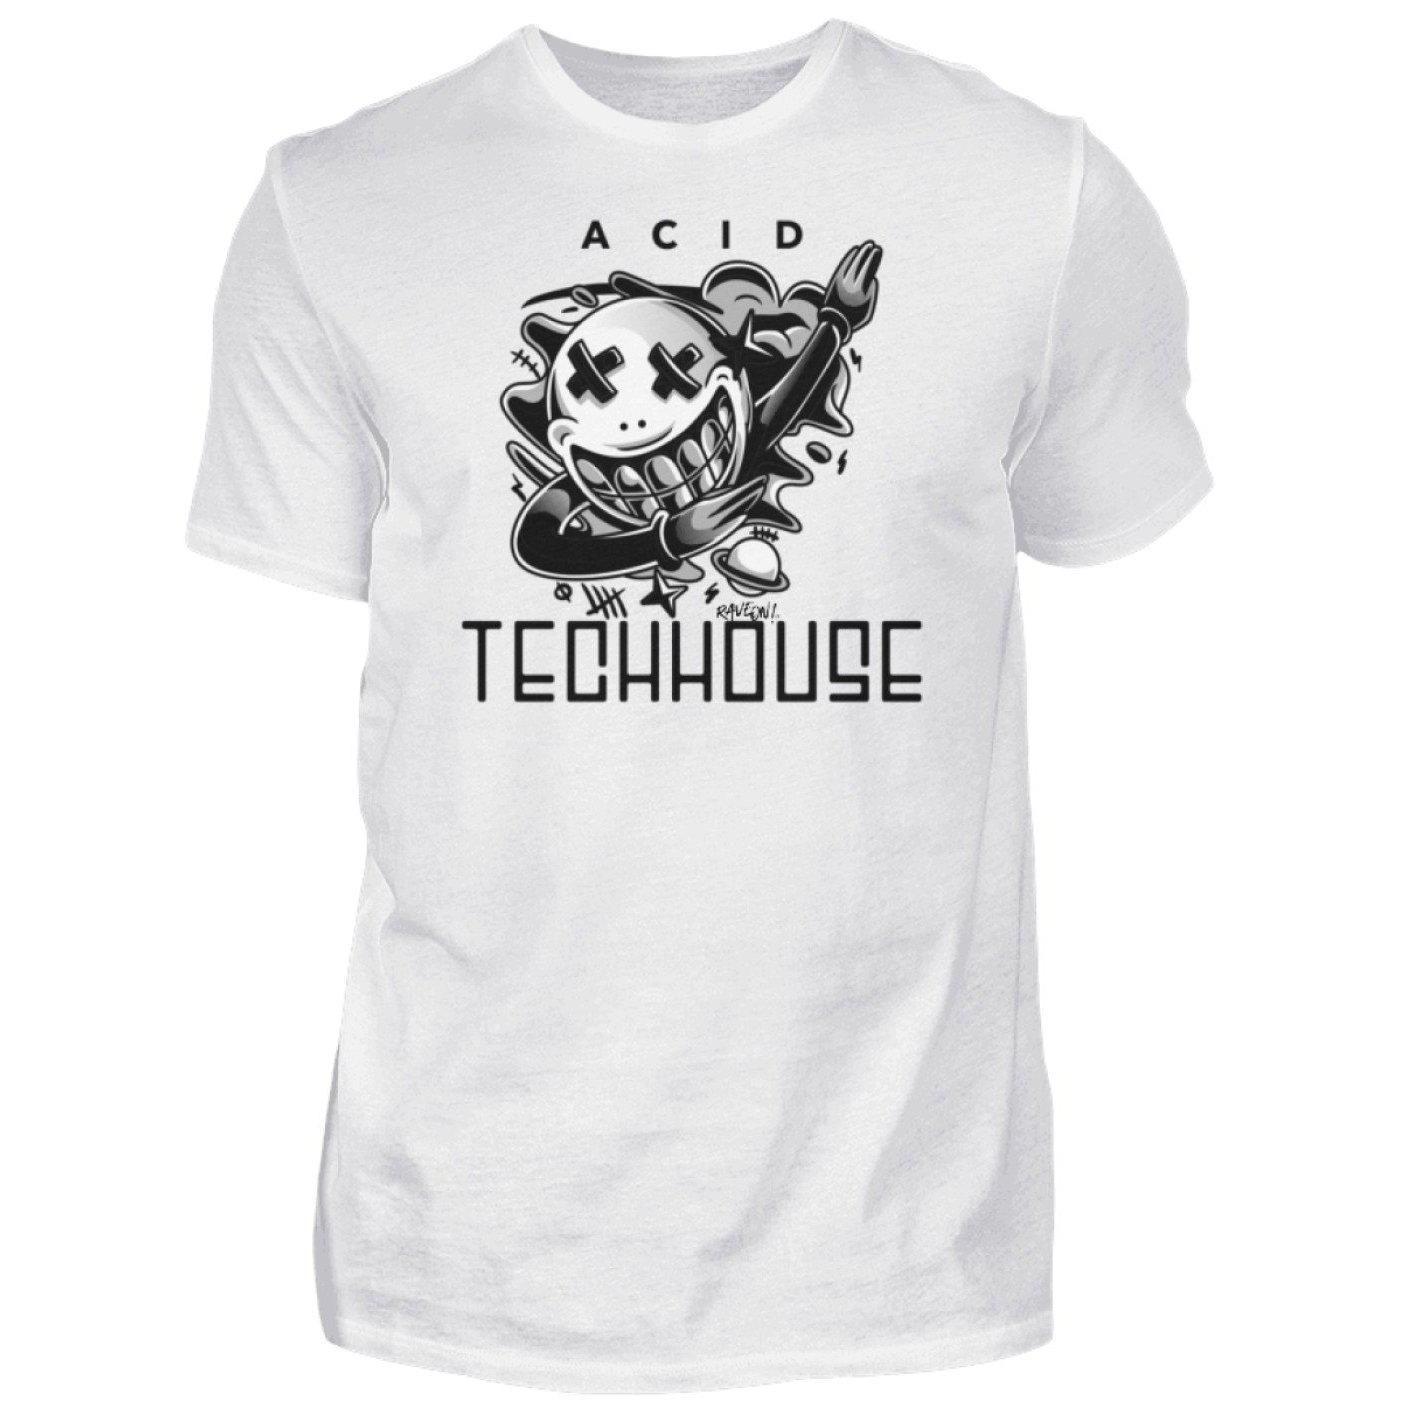 ACID TECHHOUSE - Rave On!® - Herren Shirt Herren Basic T-Shirt White / S - Rave On!® der Club & Techno Szene Shop für Coole Junge Mode Streetwear Style & Fashion Outfits + Sexy Festival 420 Stuff